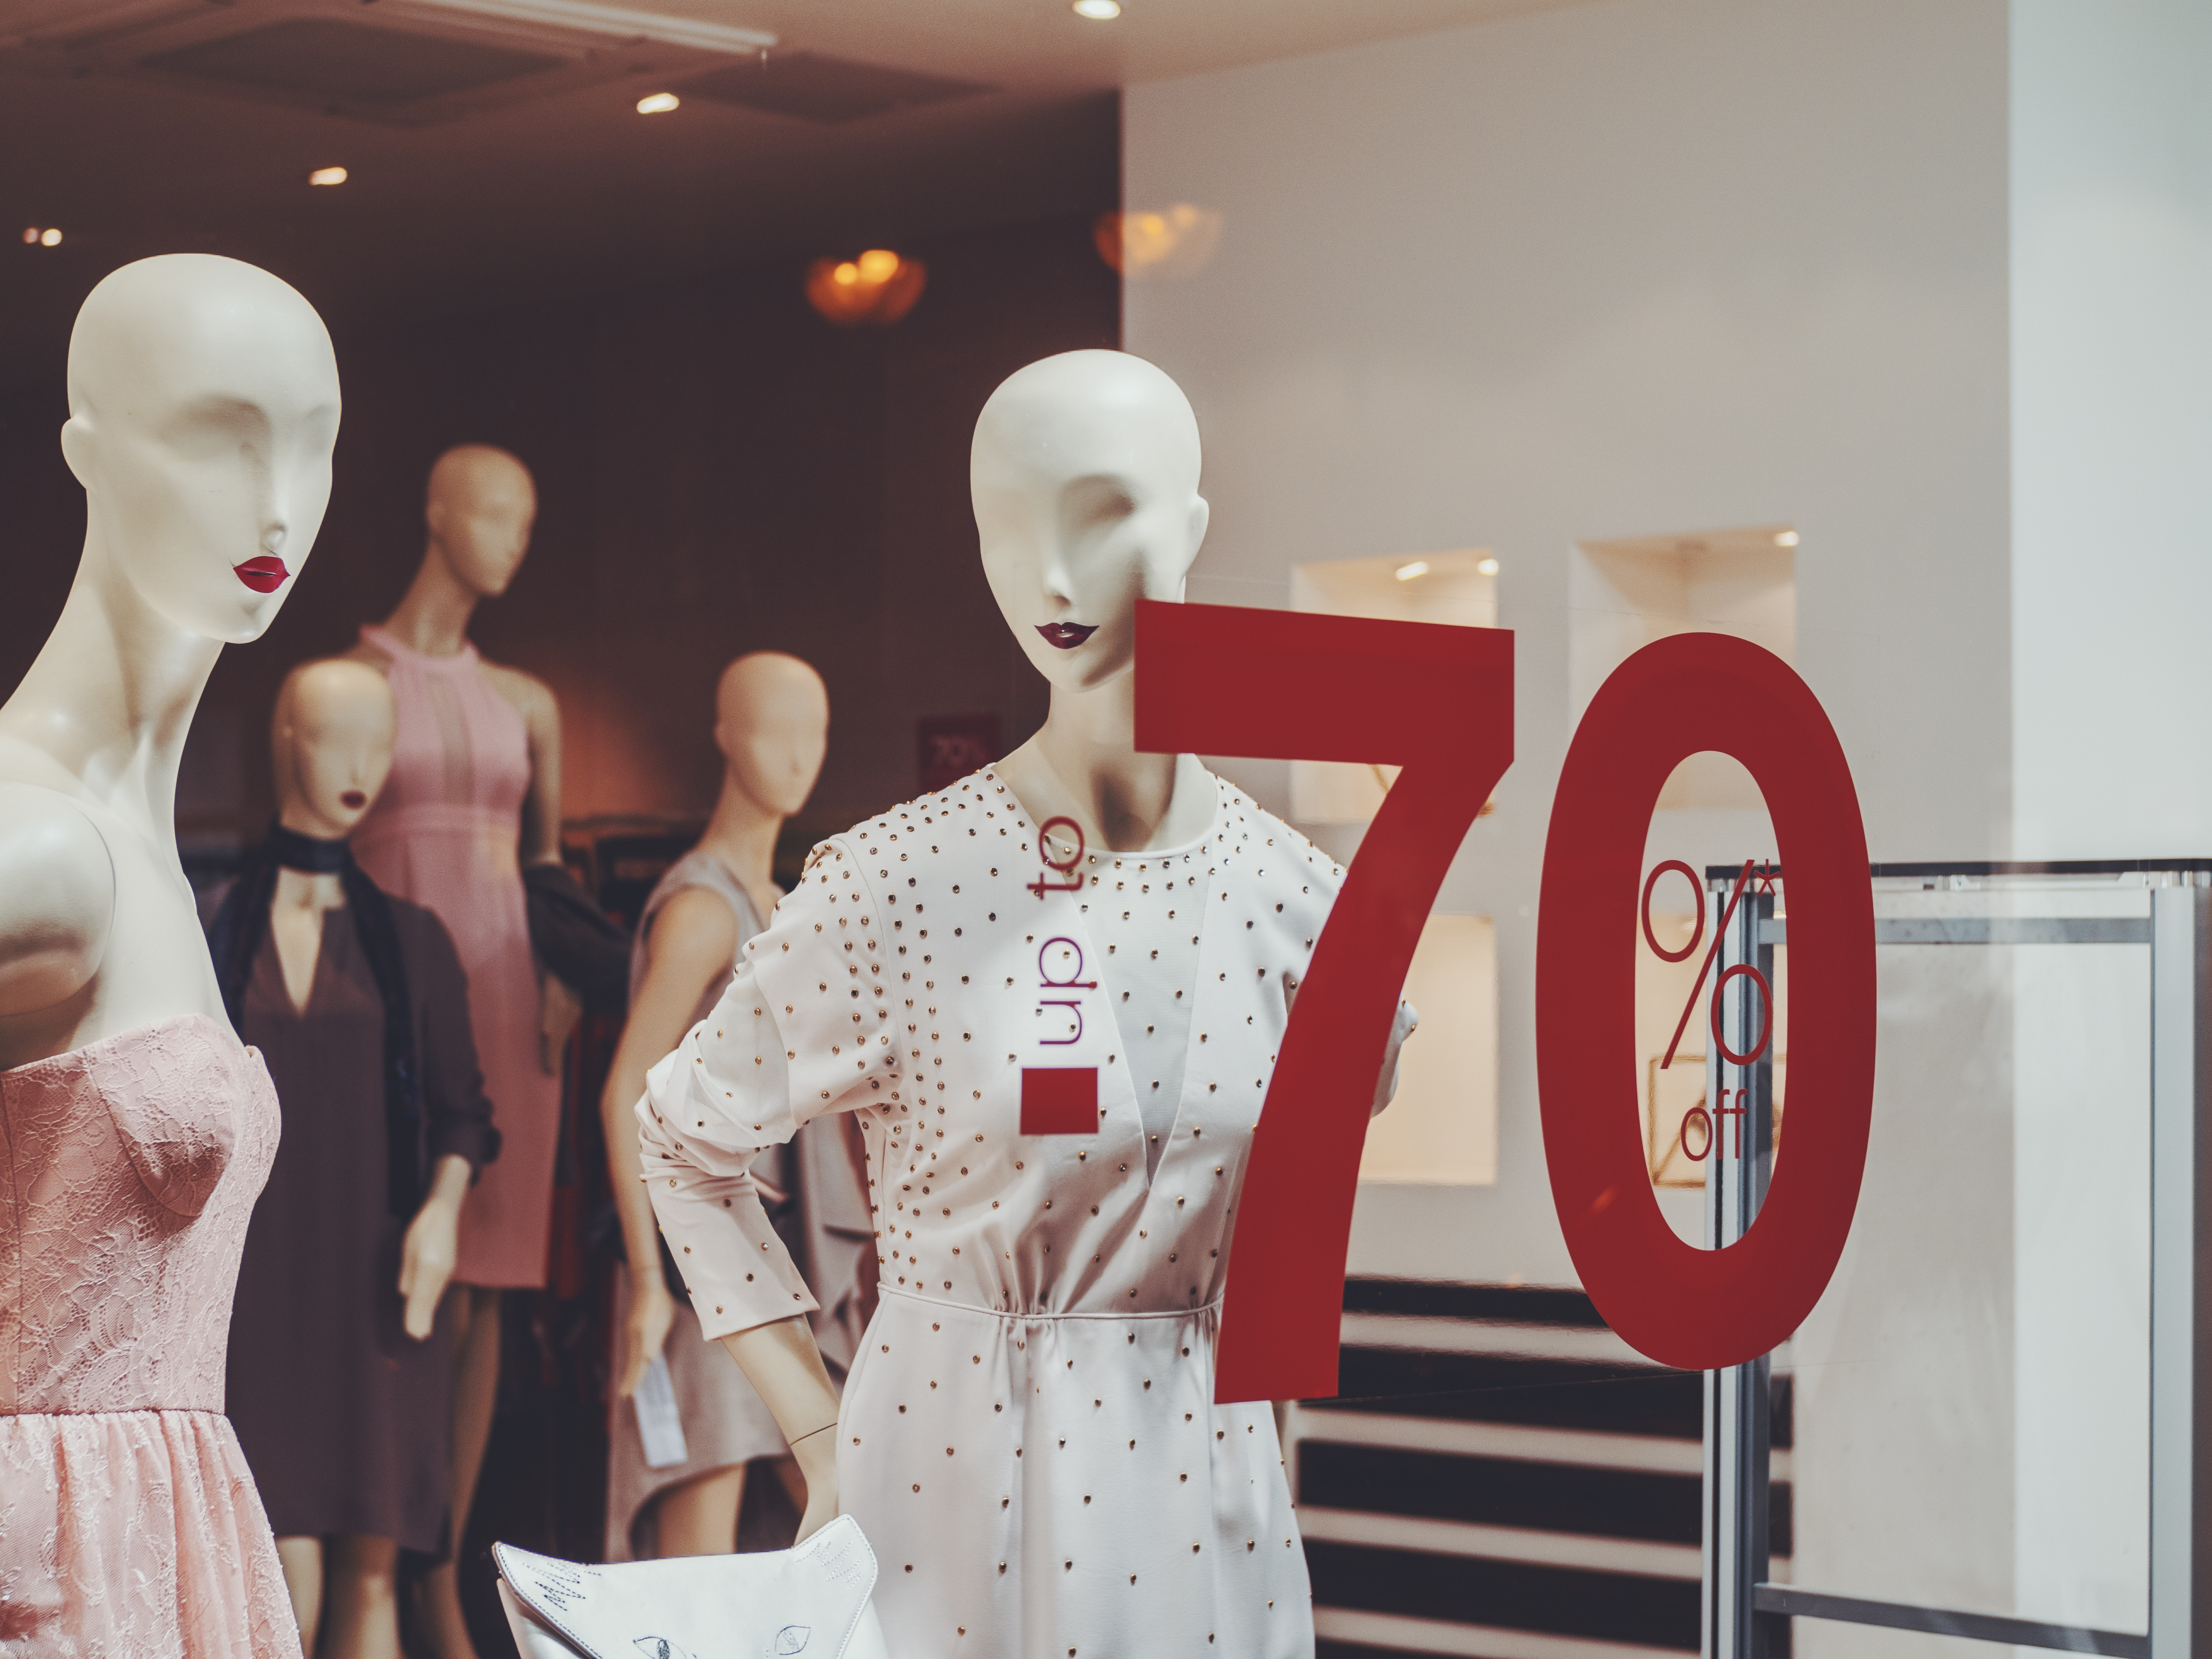 Store window design with 70% written on the glass for shopping.